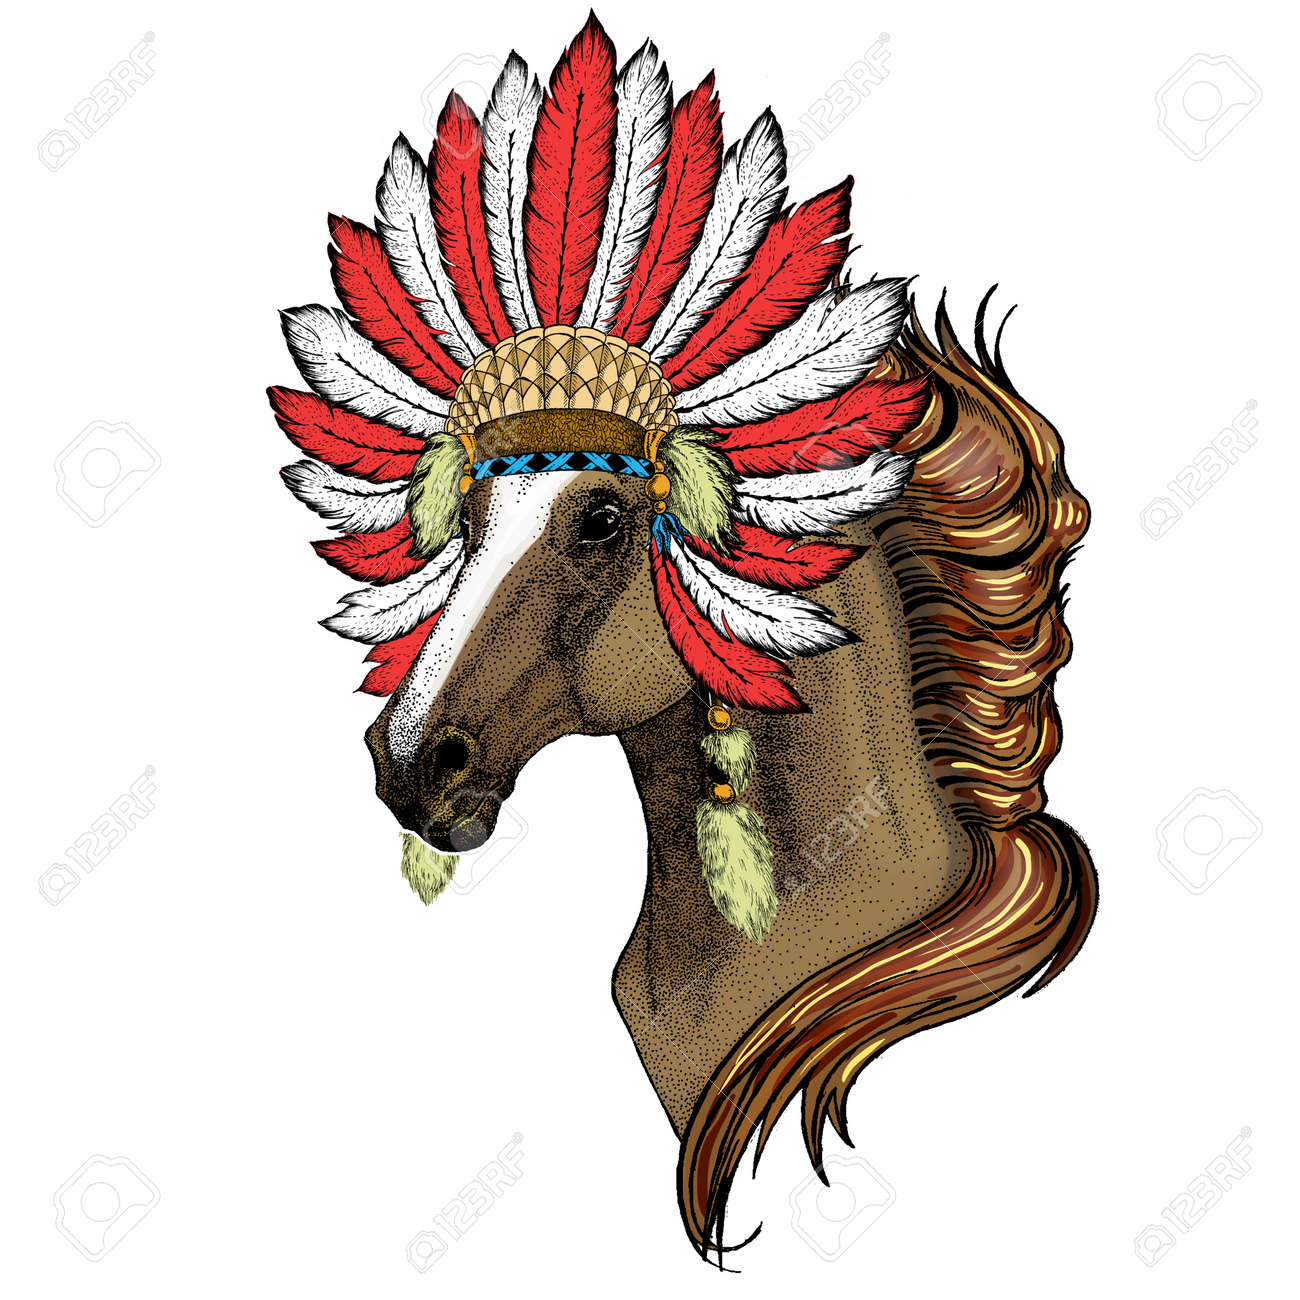 Horse Steed Courser Portrait Of Wild Animal Indian Headdress Stock Photo Picture And Royalty Free Image Image 142427052